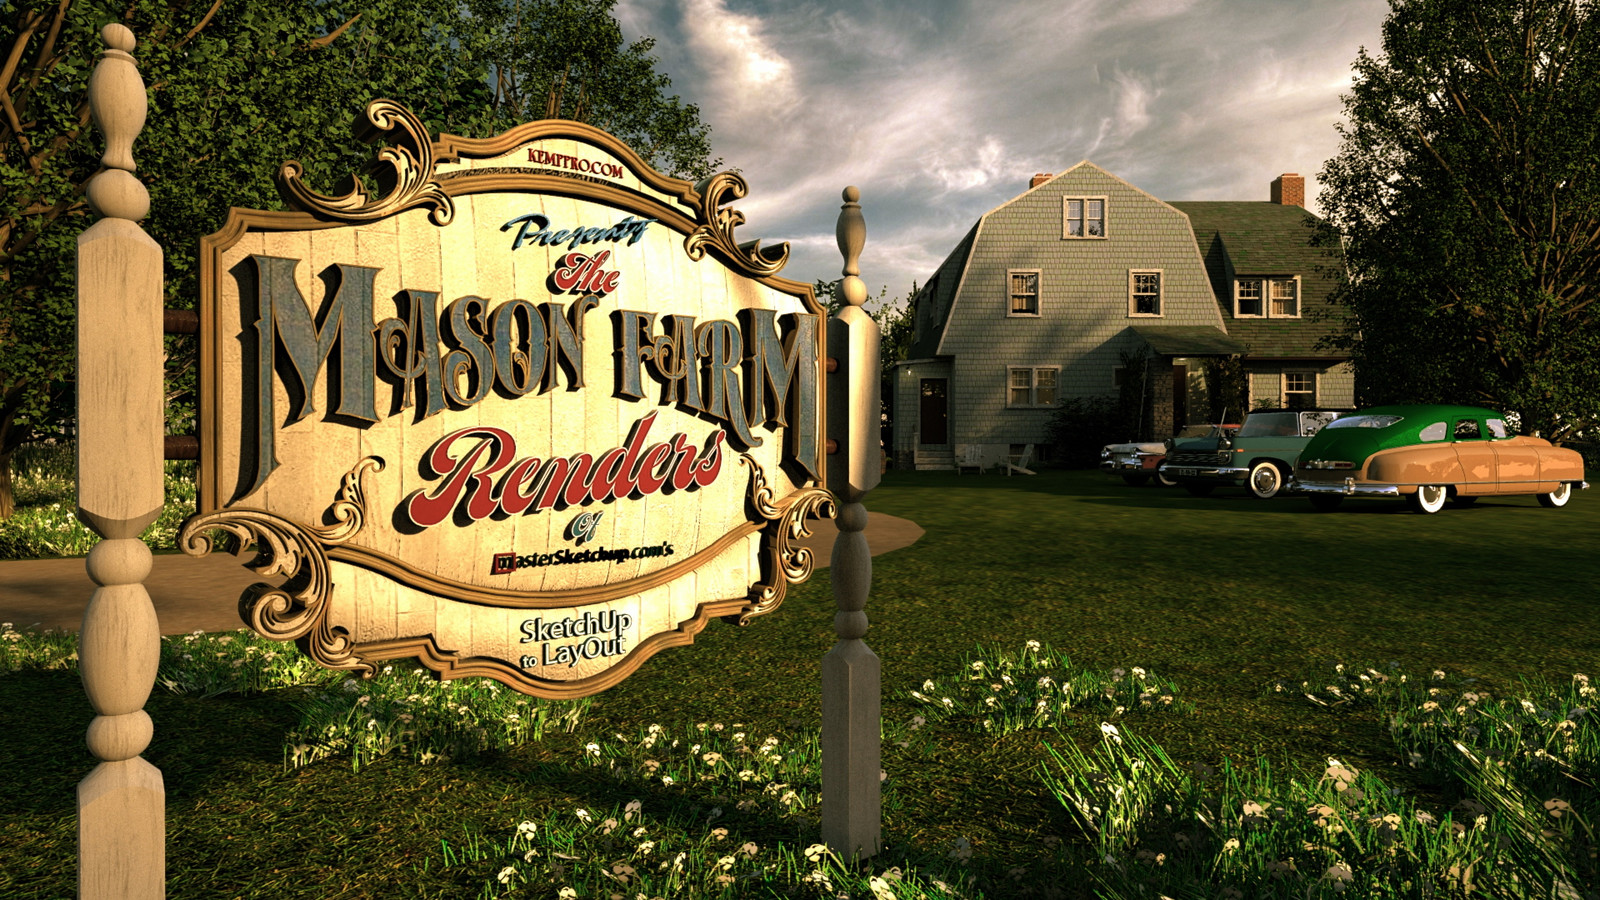 """Final image of the Mason Farm Renders project   10 Masonfarm HD1080 36 - iP Kodac 02  """"SketchUp to LayOut"""" The Mason Farm Renders for the launching of the new book """"SketchUp to LayOut"""" http://bit.ly/2j0d0Wh by MasterSketchup."""